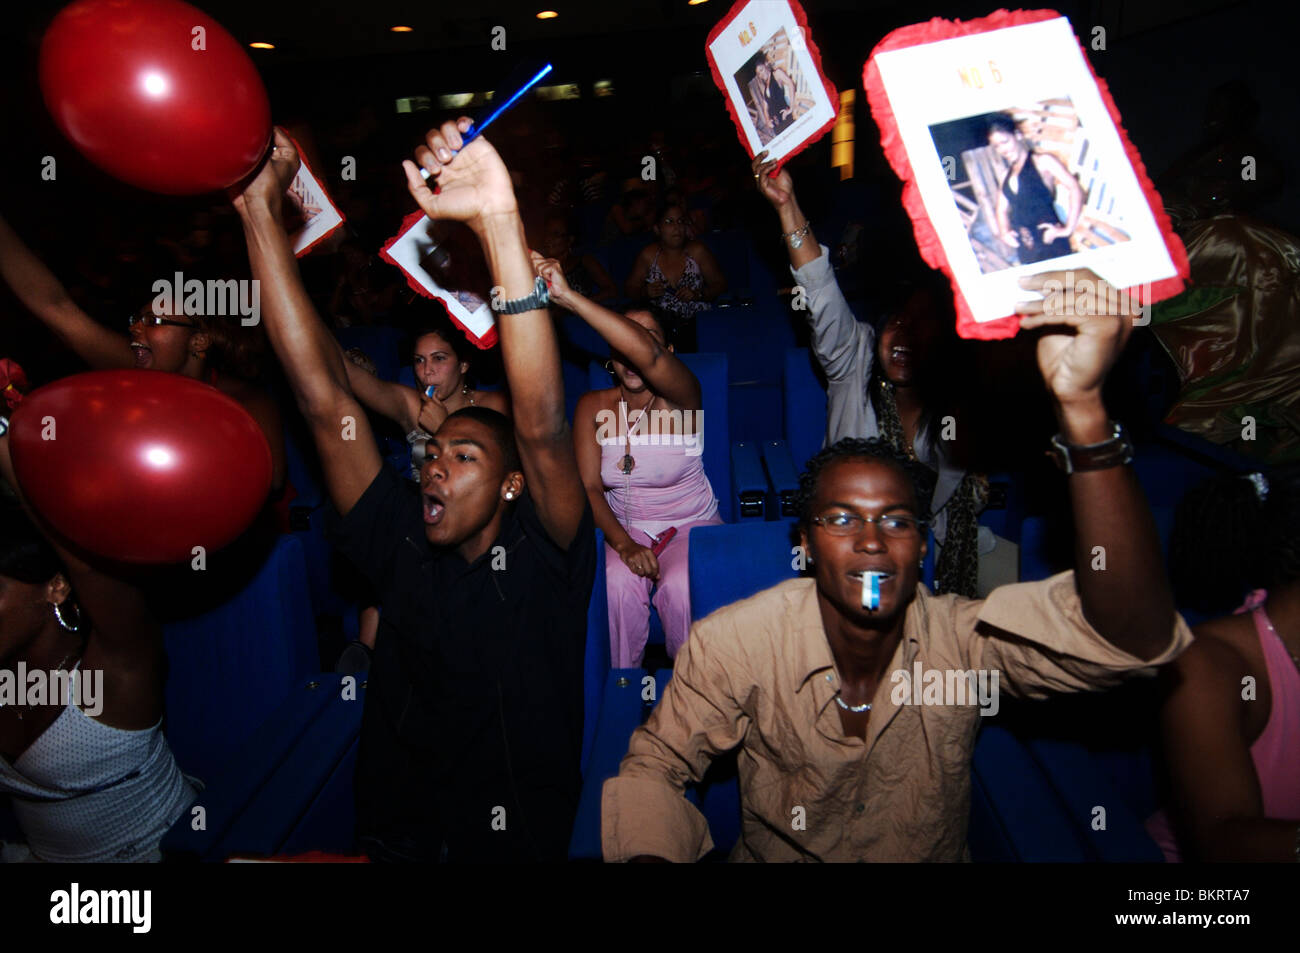 Curacao, the audience is supporting its favorites during the Miss Curacao election - Stock Image